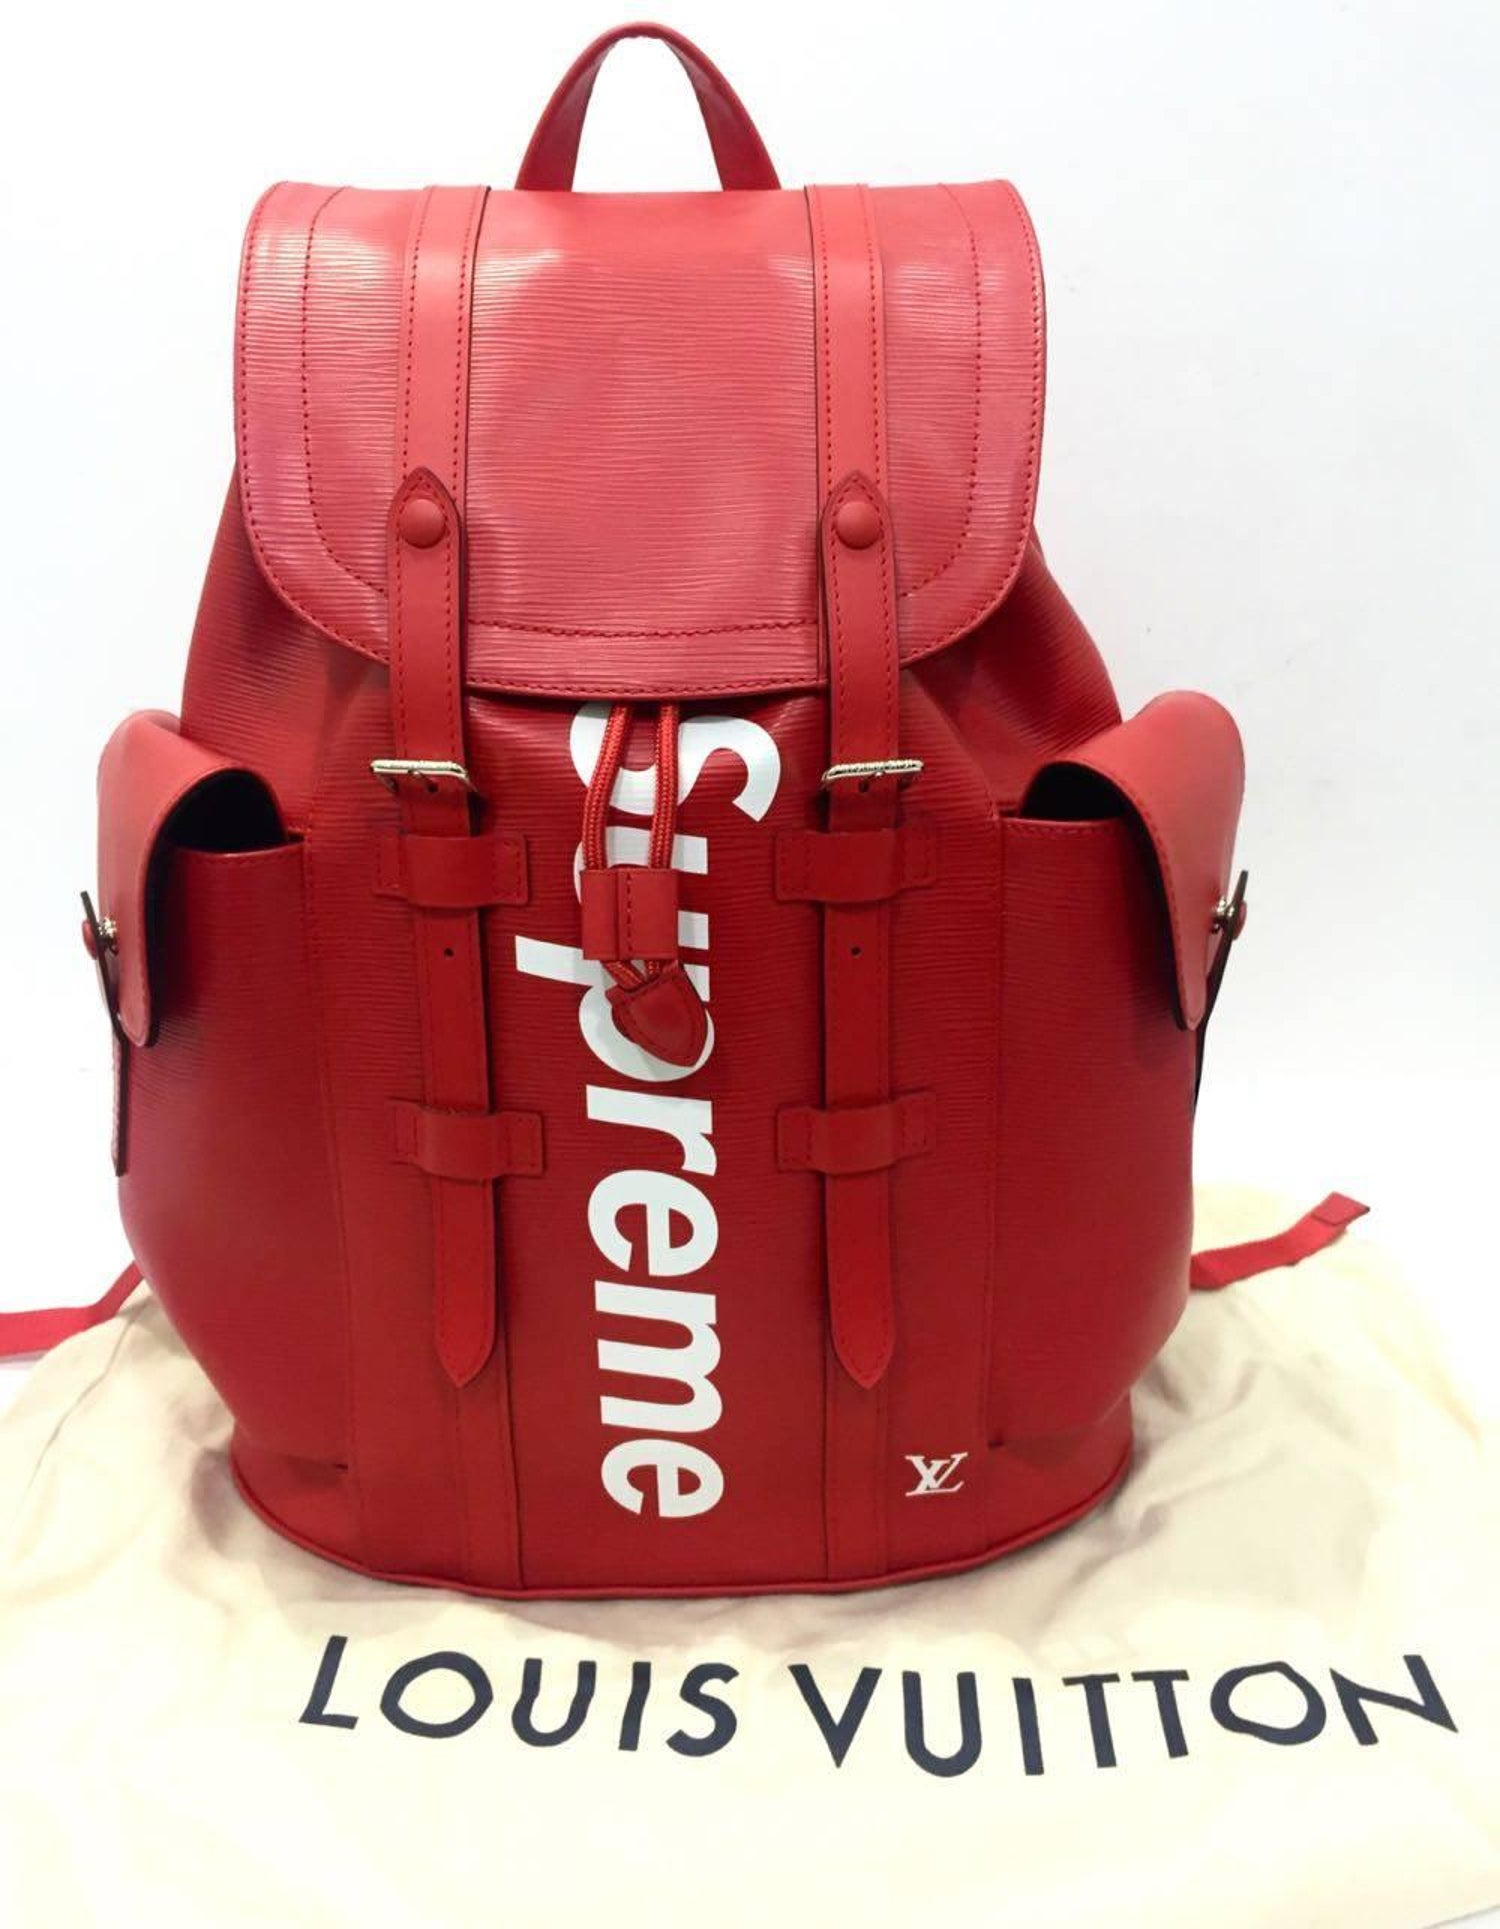 e2f2f4693 Lv Supreme Red Leather Backpack | Building Materials Bargain Center